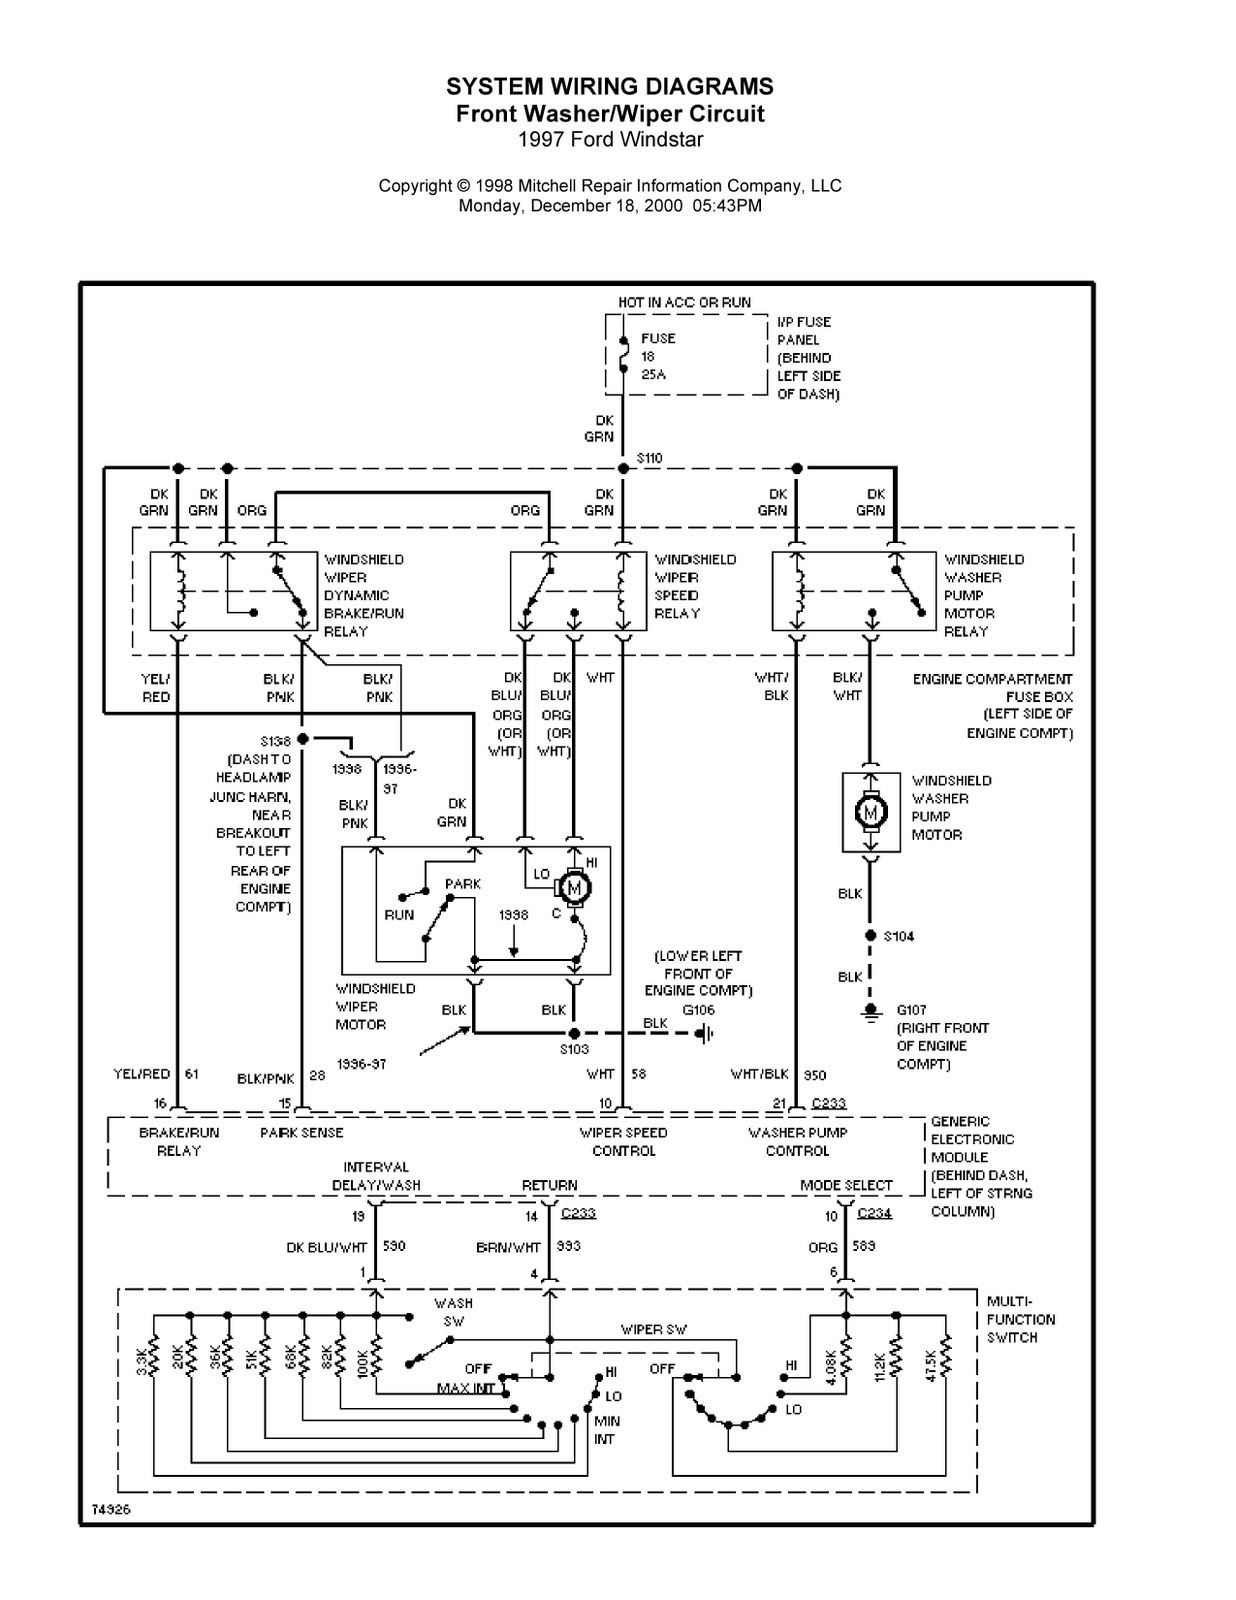 0051 1997 ford windstar complete system wiring diagrams wiring wiring diagram for 1998 vw beetle at bayanpartner.co